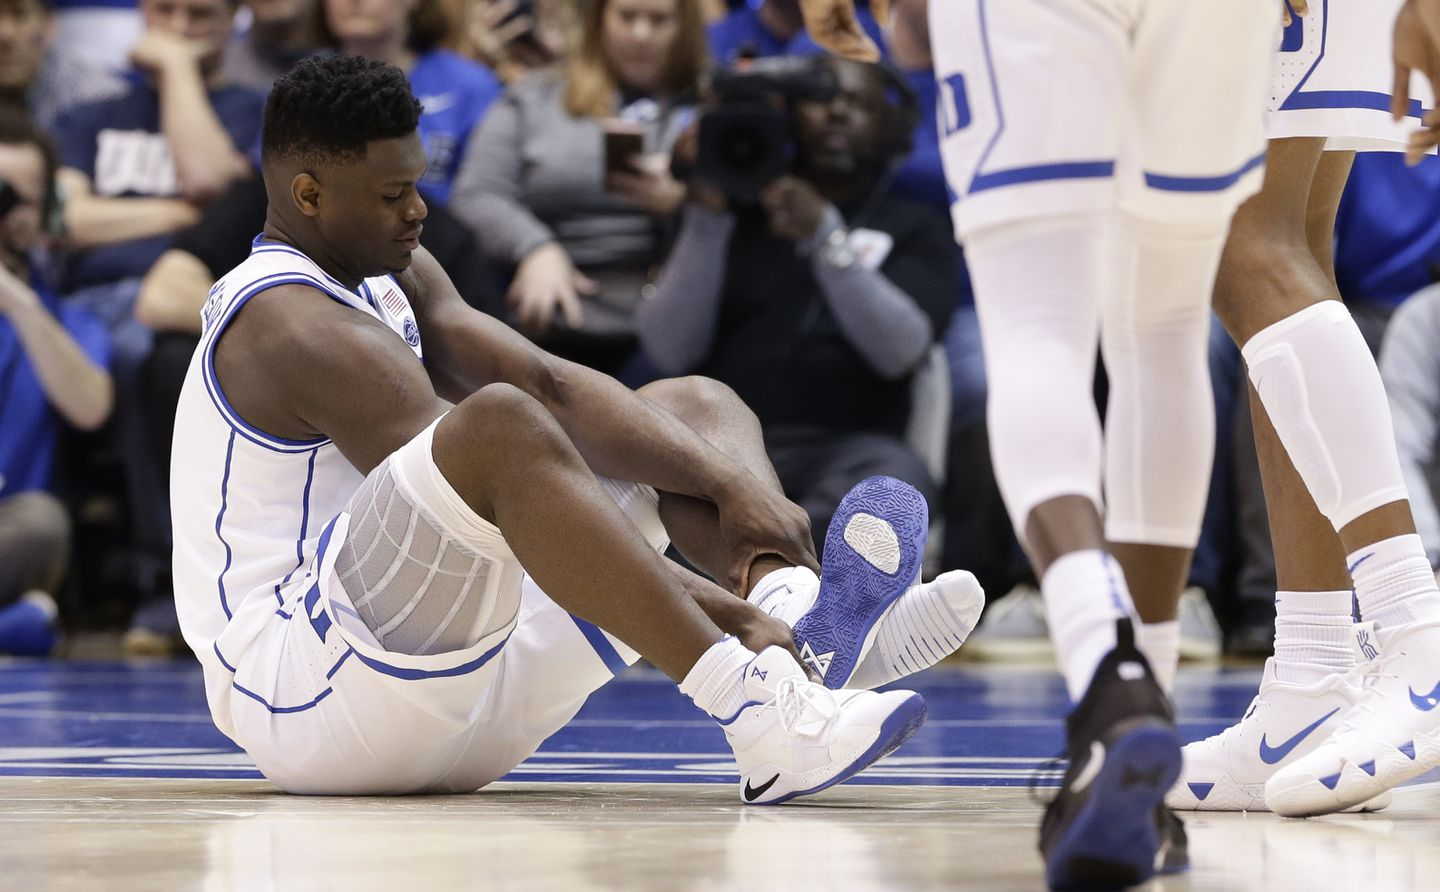 Bajo pared intervalo  Twitter users target Nike after basketball star's shoe splits, leading to  injury - The Boston Globe